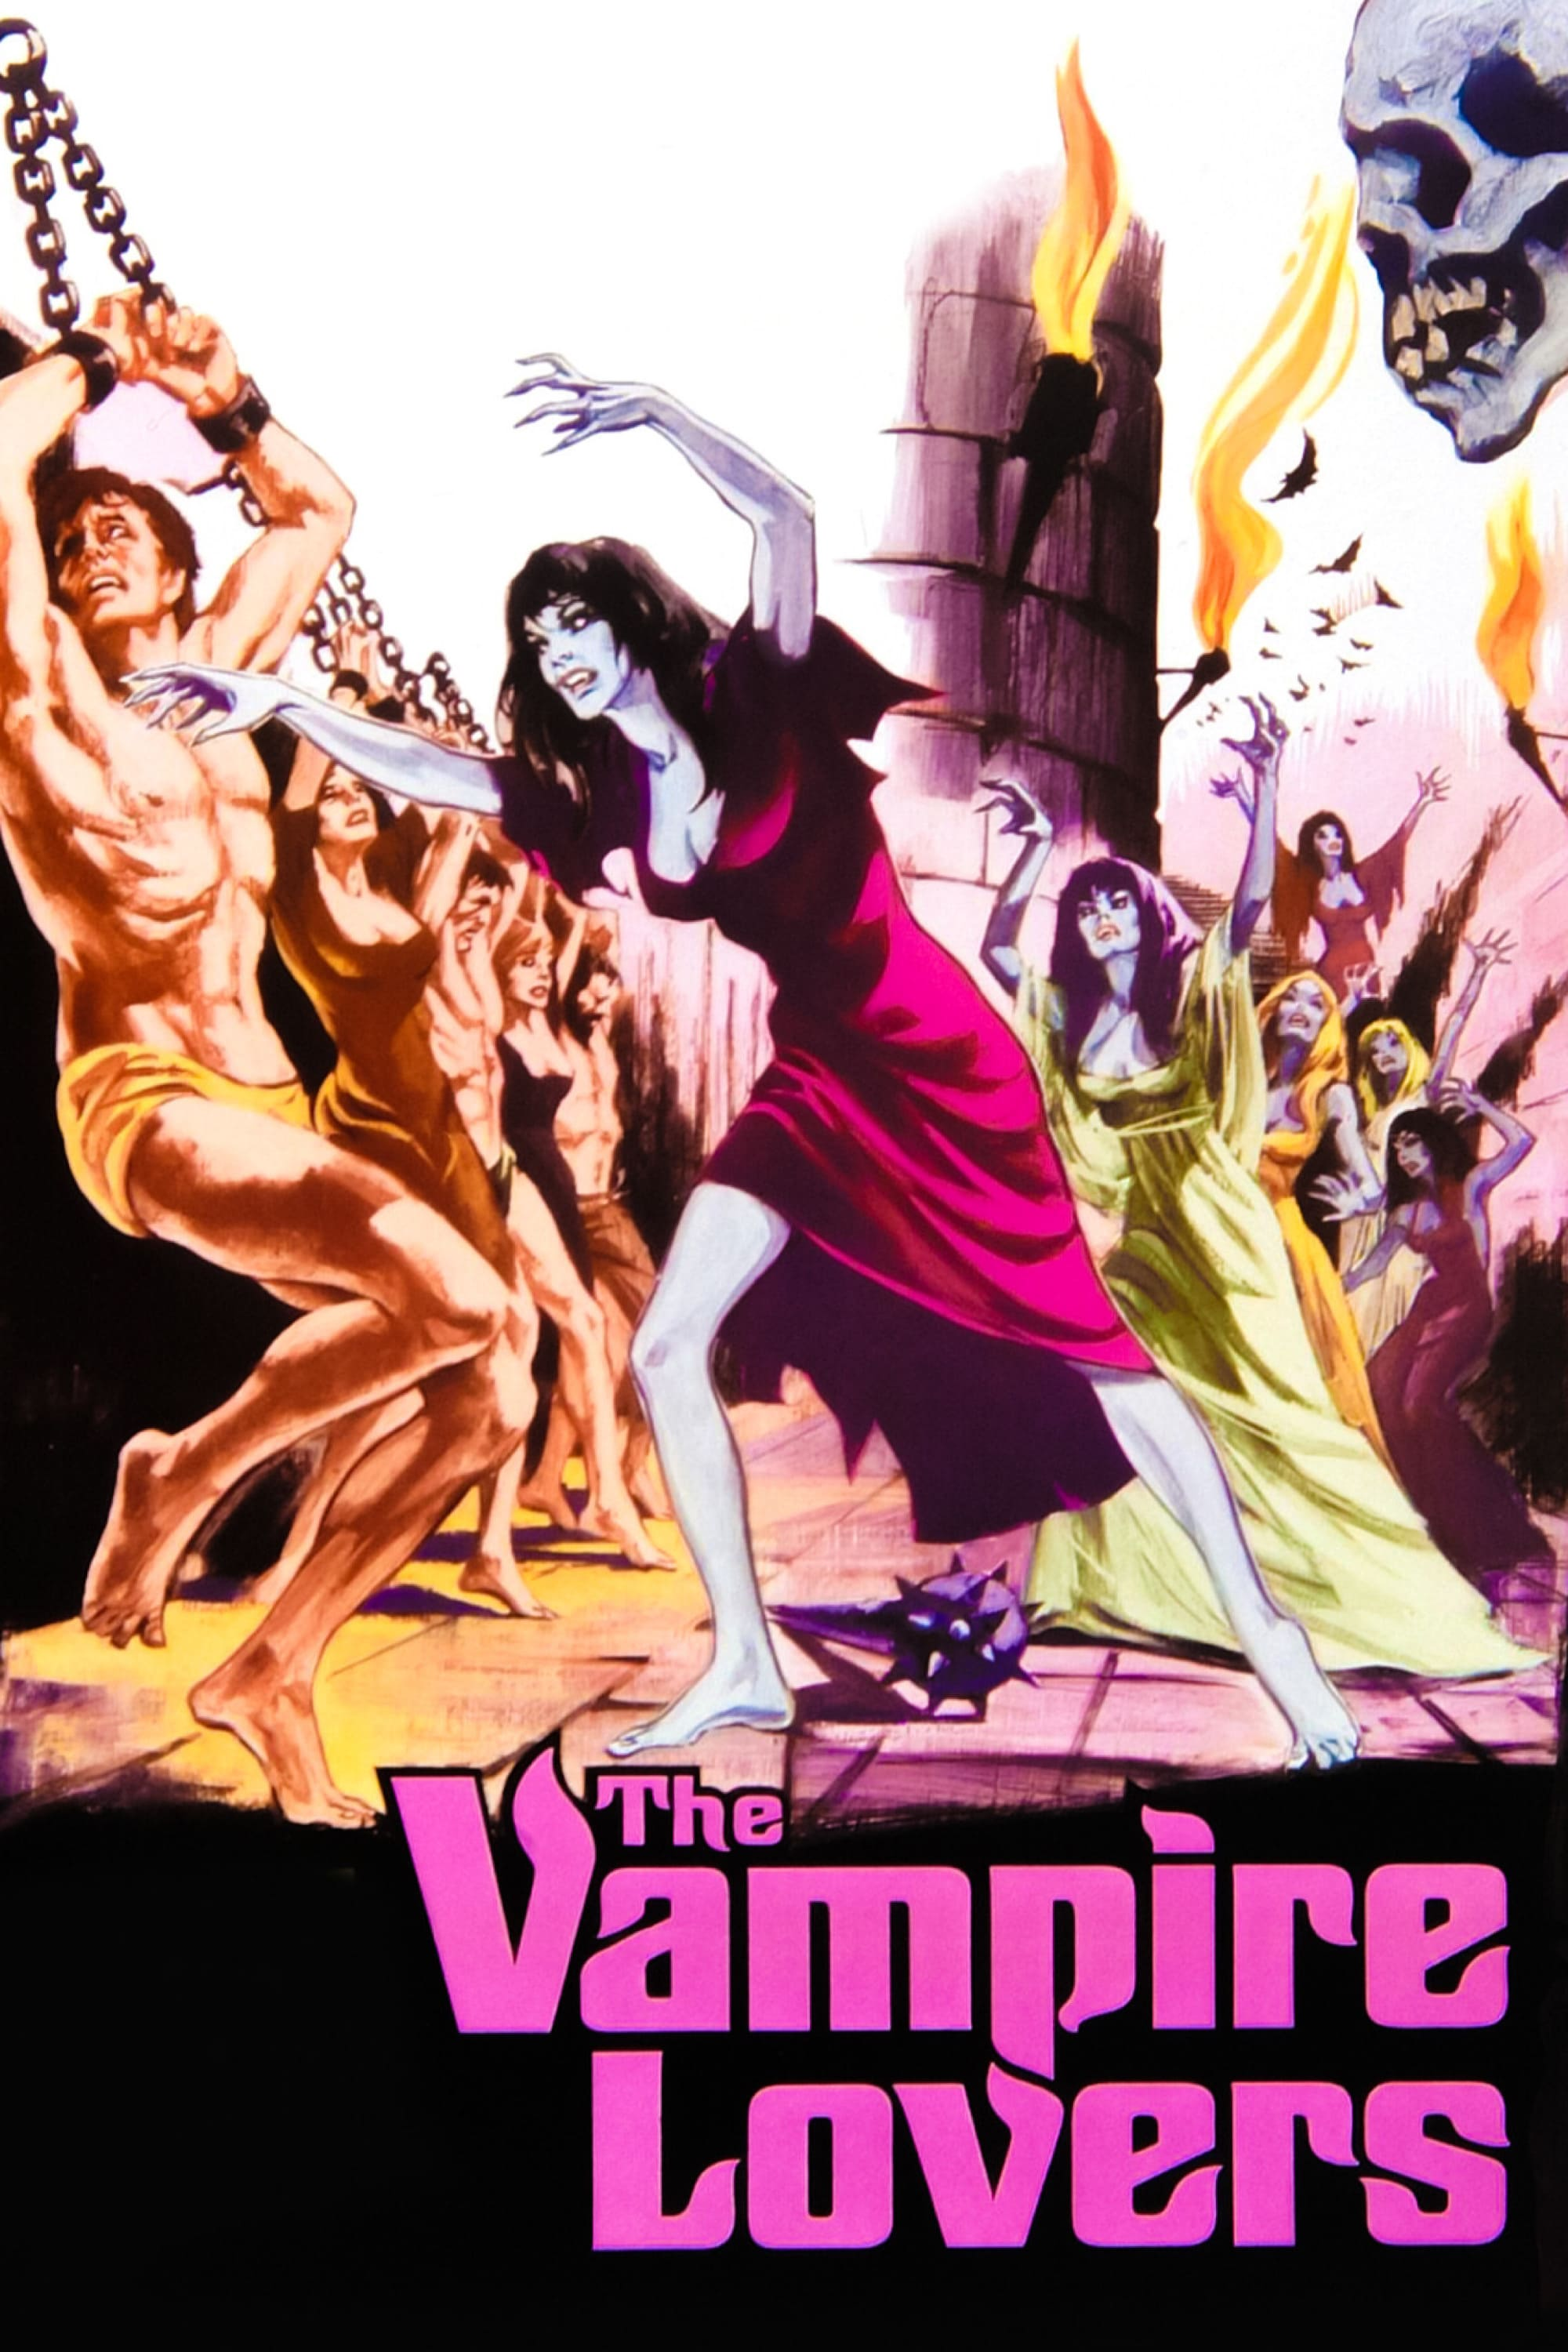 Poster for The Vampire Lovers (1970)